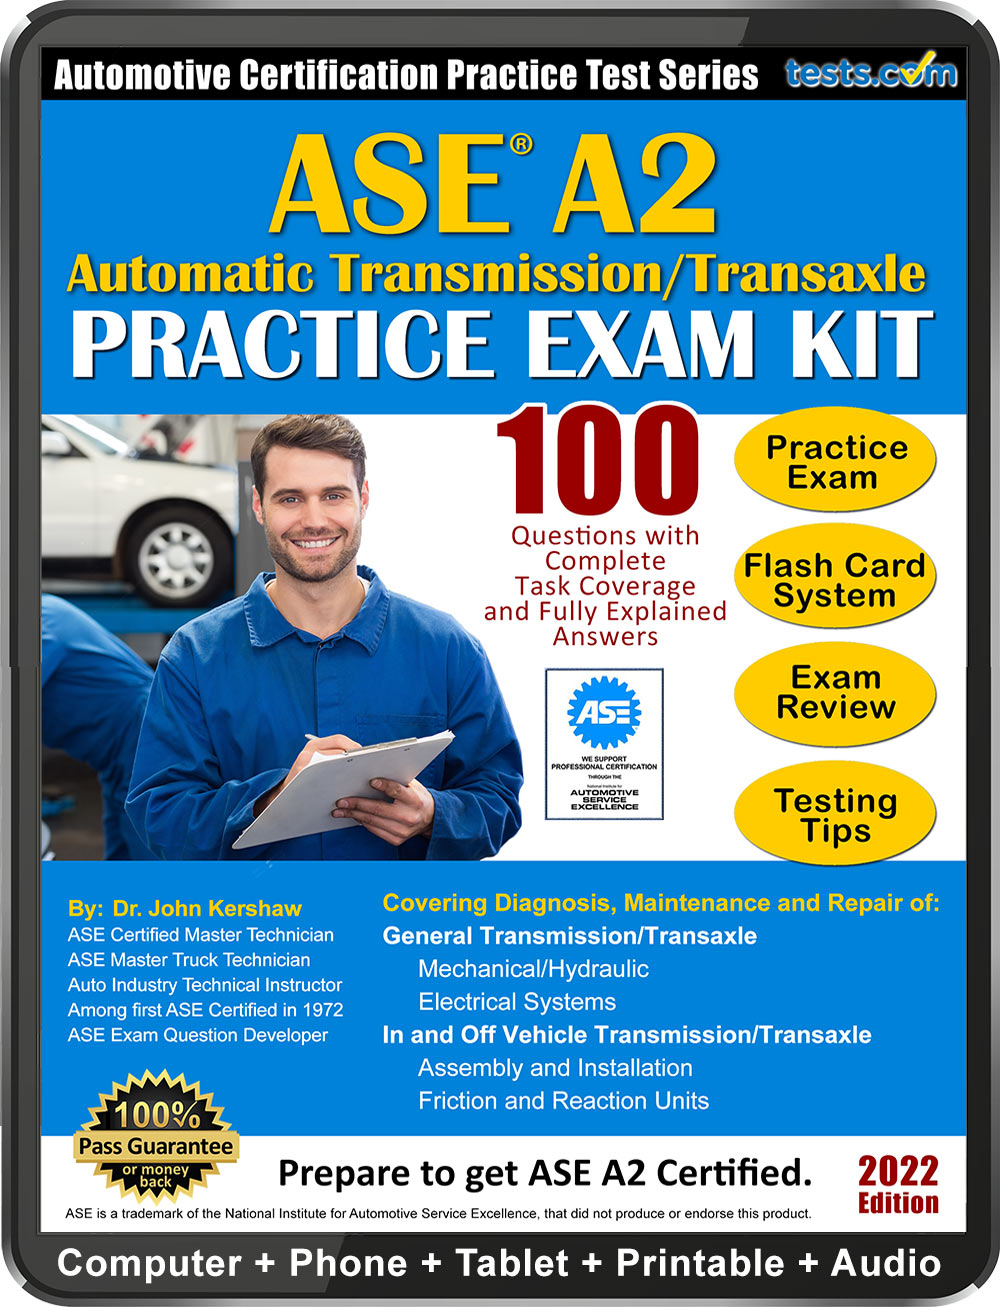 ase practice test a2 study tests certification pass material exam money questions sample explained kit guaranteed expert written answers